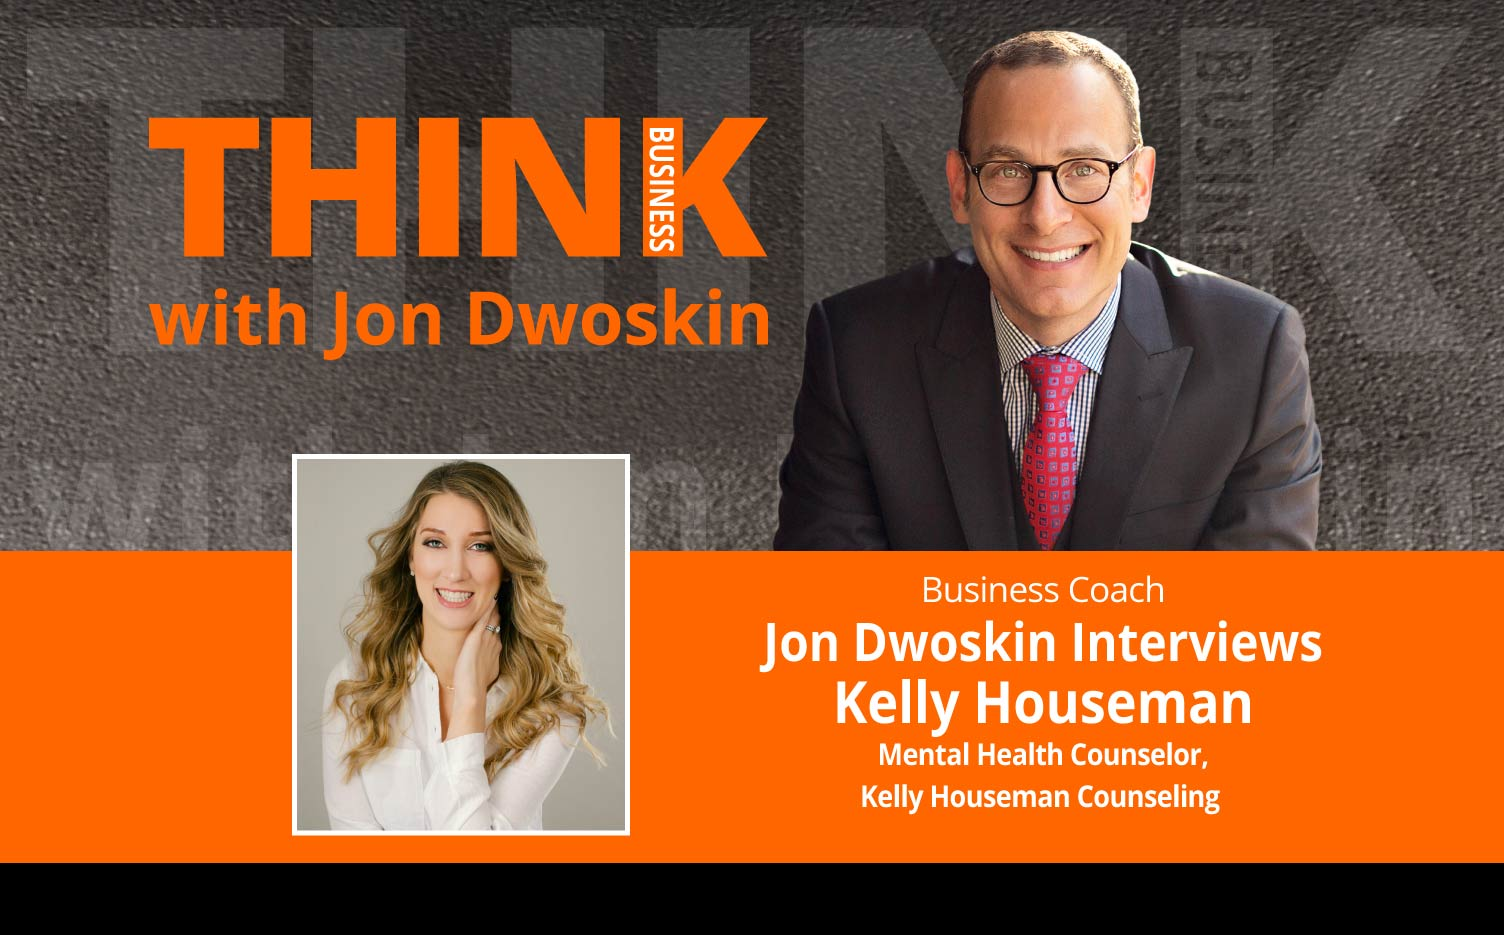 THINK Business Podcast: Jon Dwoskin Interviews Kelly Houseman, Mental Health Counselor, Kelly Houseman Counseling